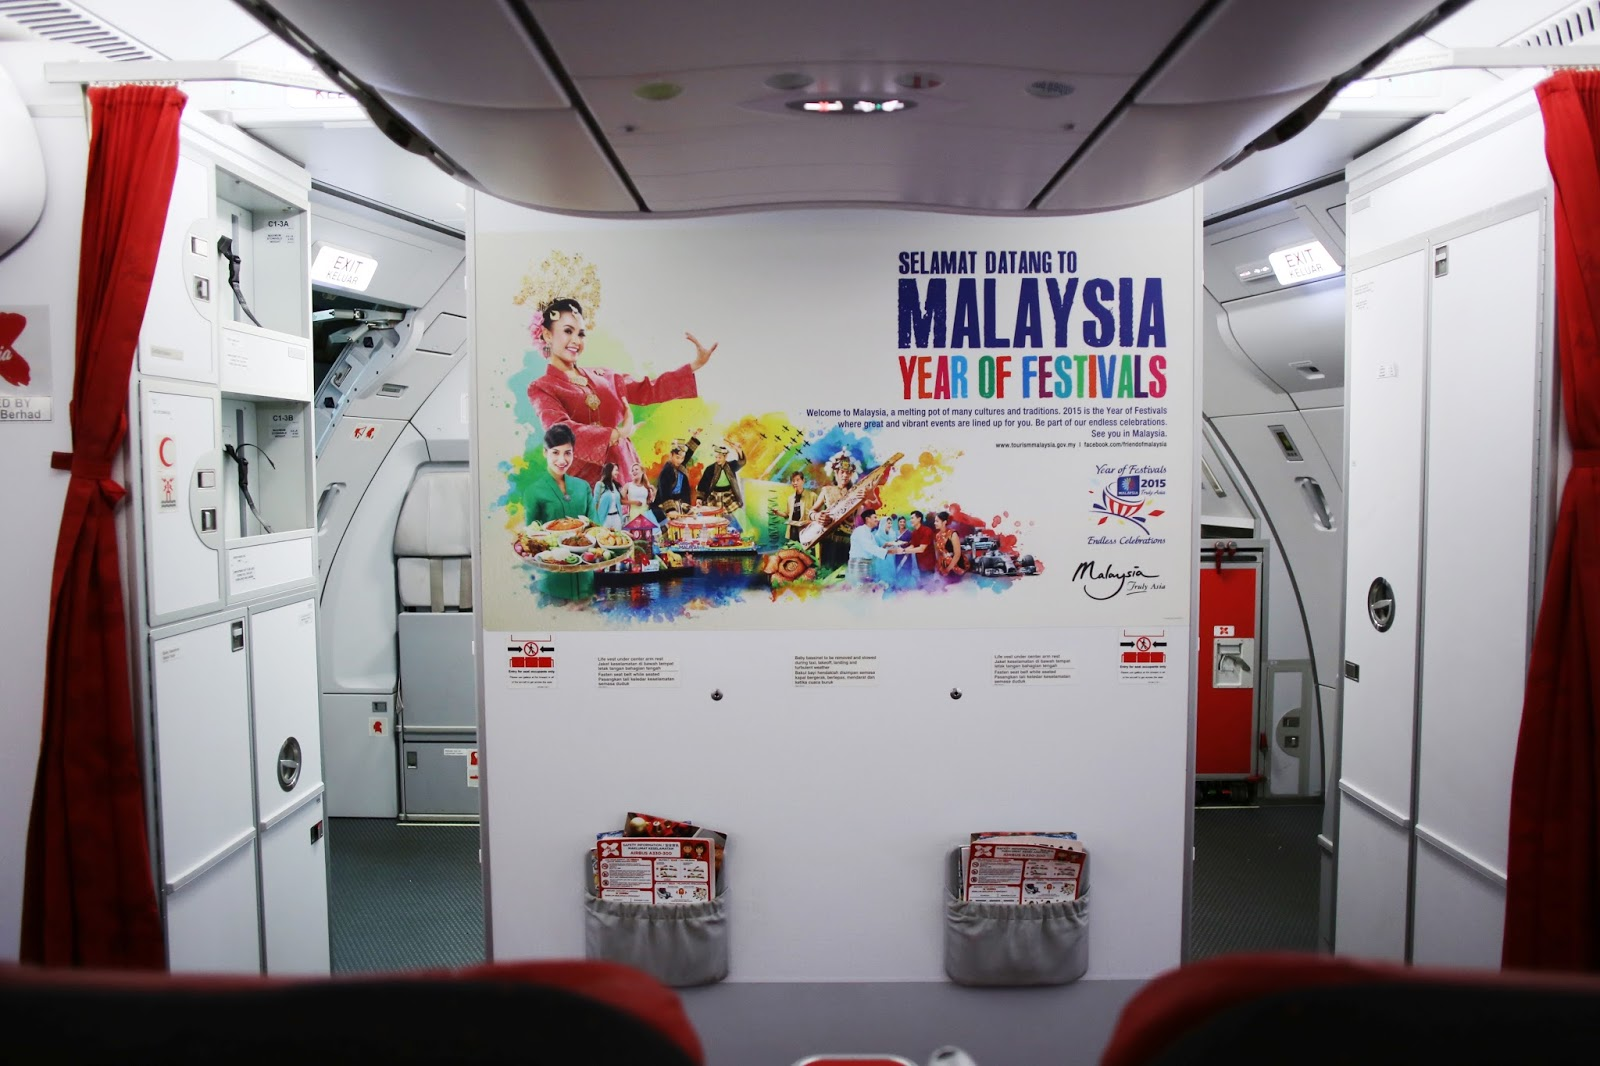 air asia business process Airasia wins 'world's best low-cost airline' award for the 10th year in a row, at the 2018 skytrax world airline awards.